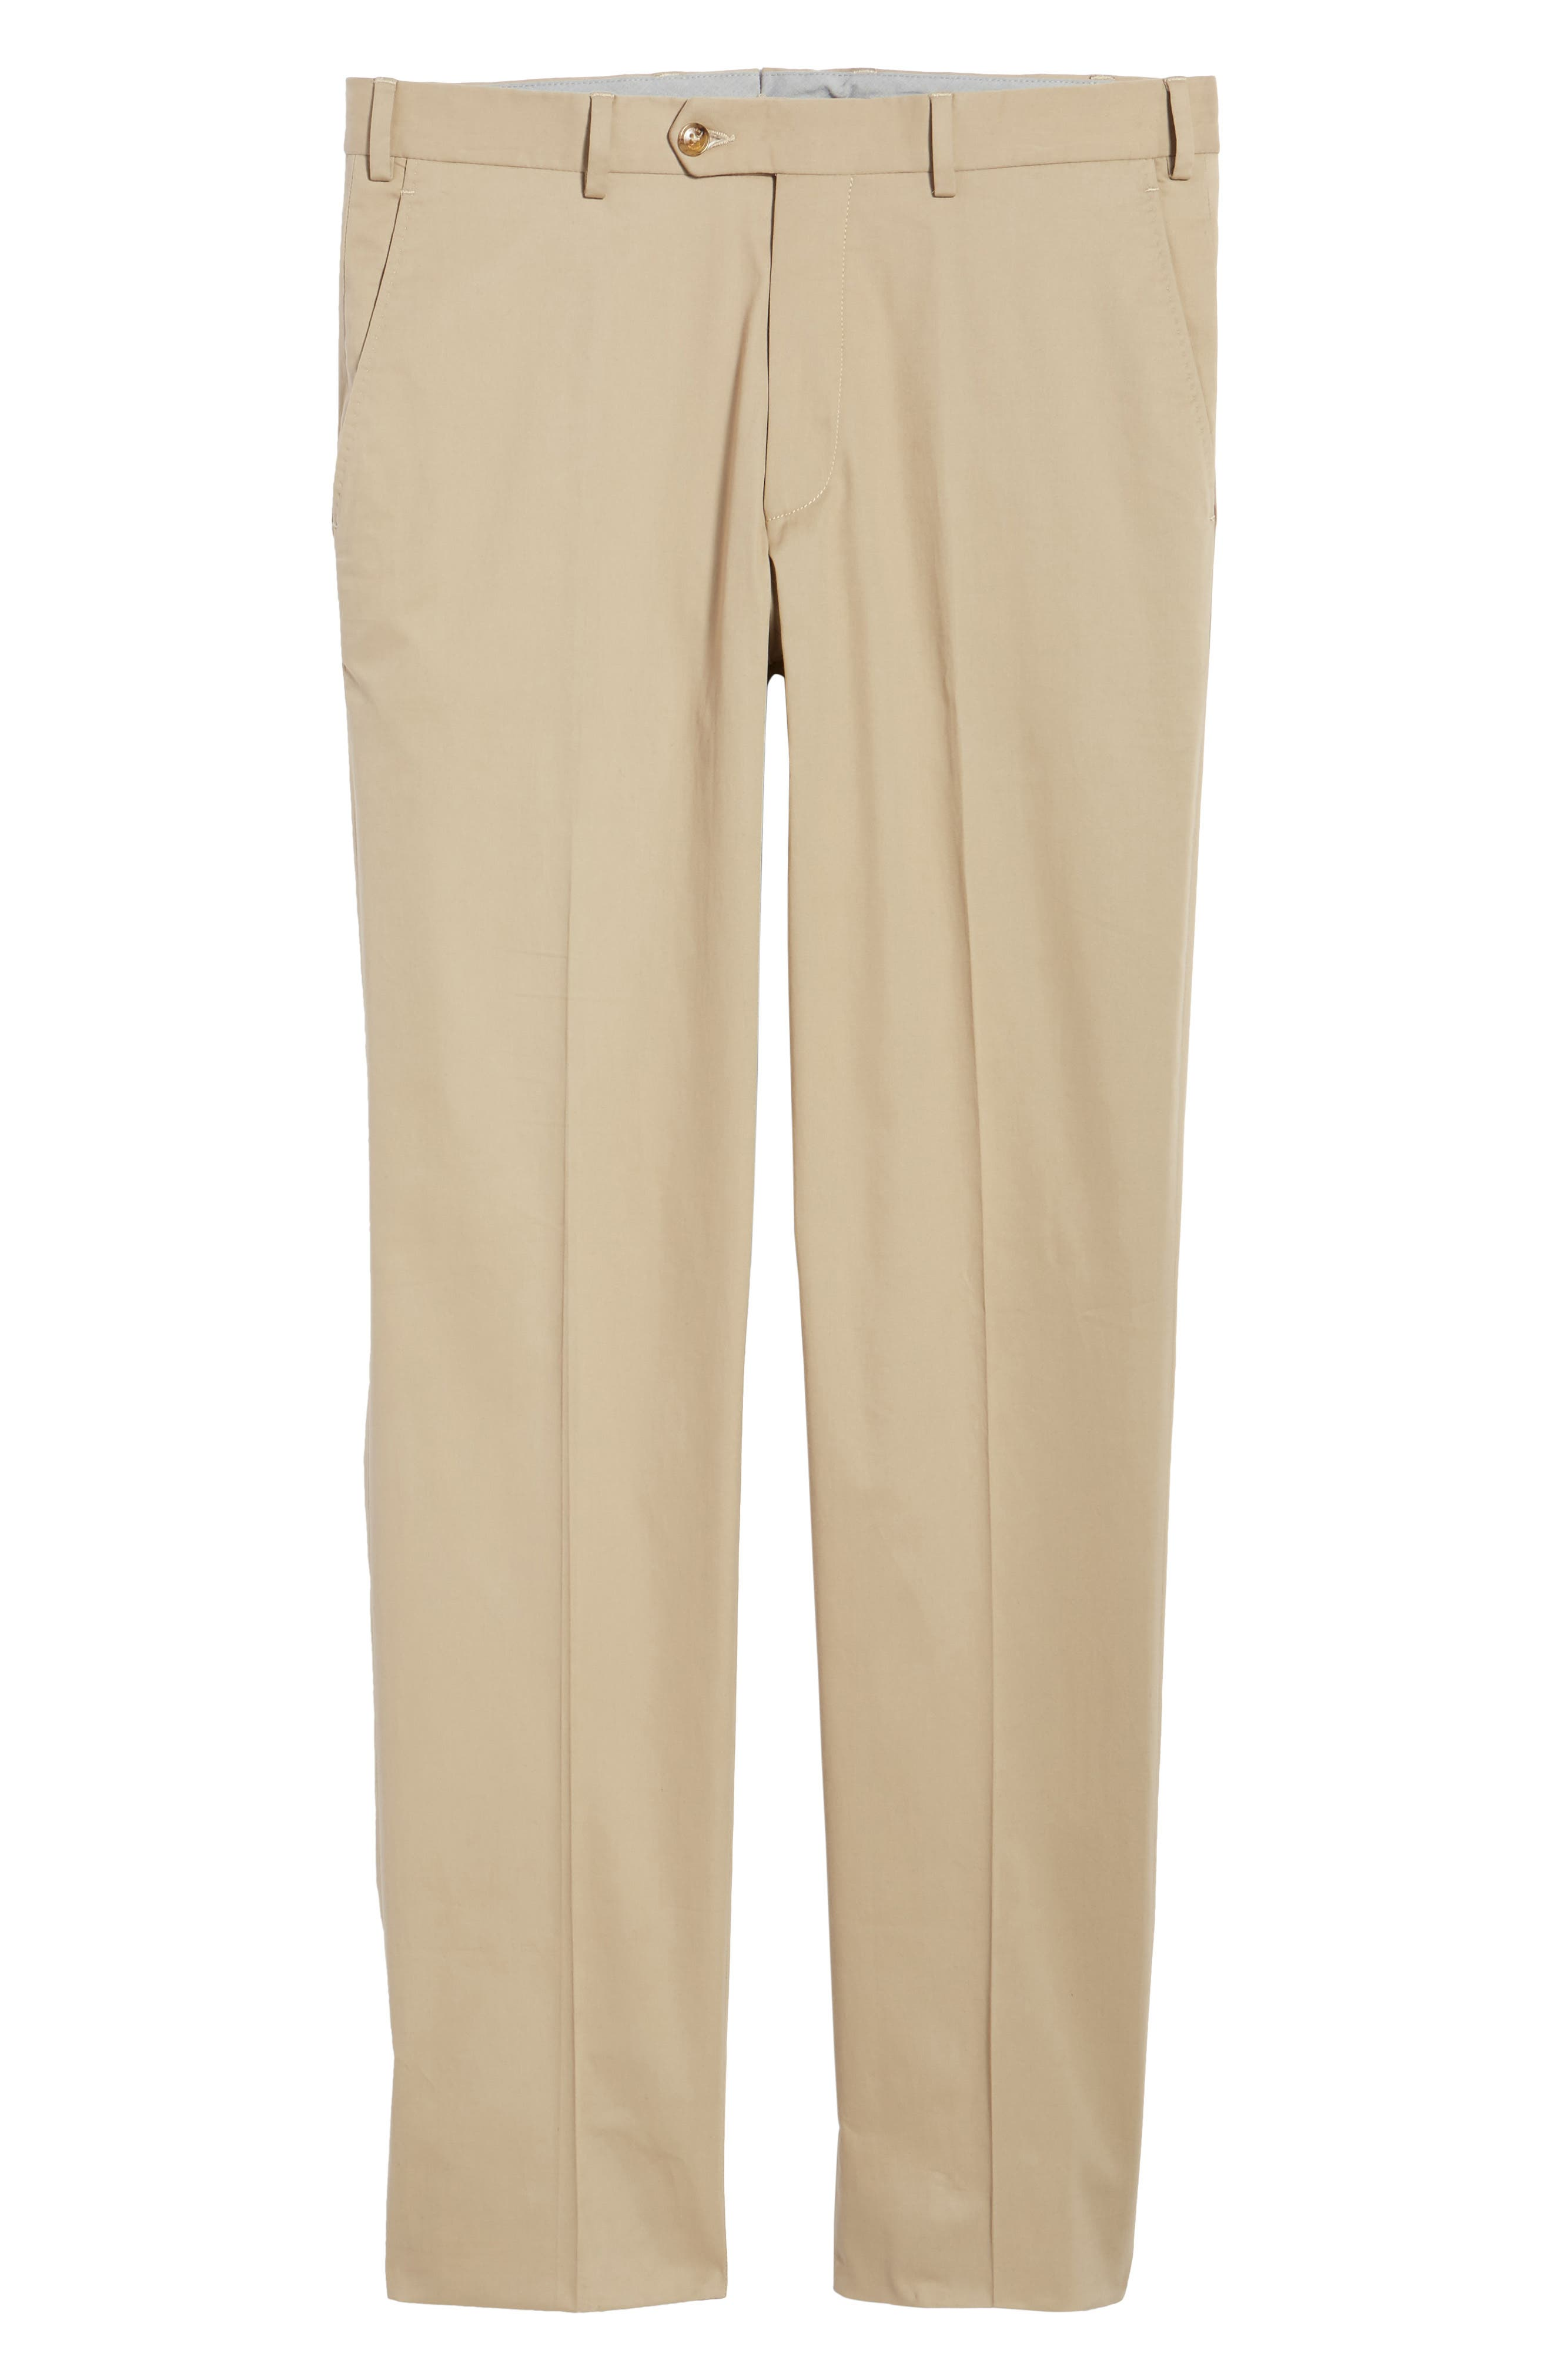 Perfect Flat Front Poplin Pants,                             Alternate thumbnail 6, color,                             260